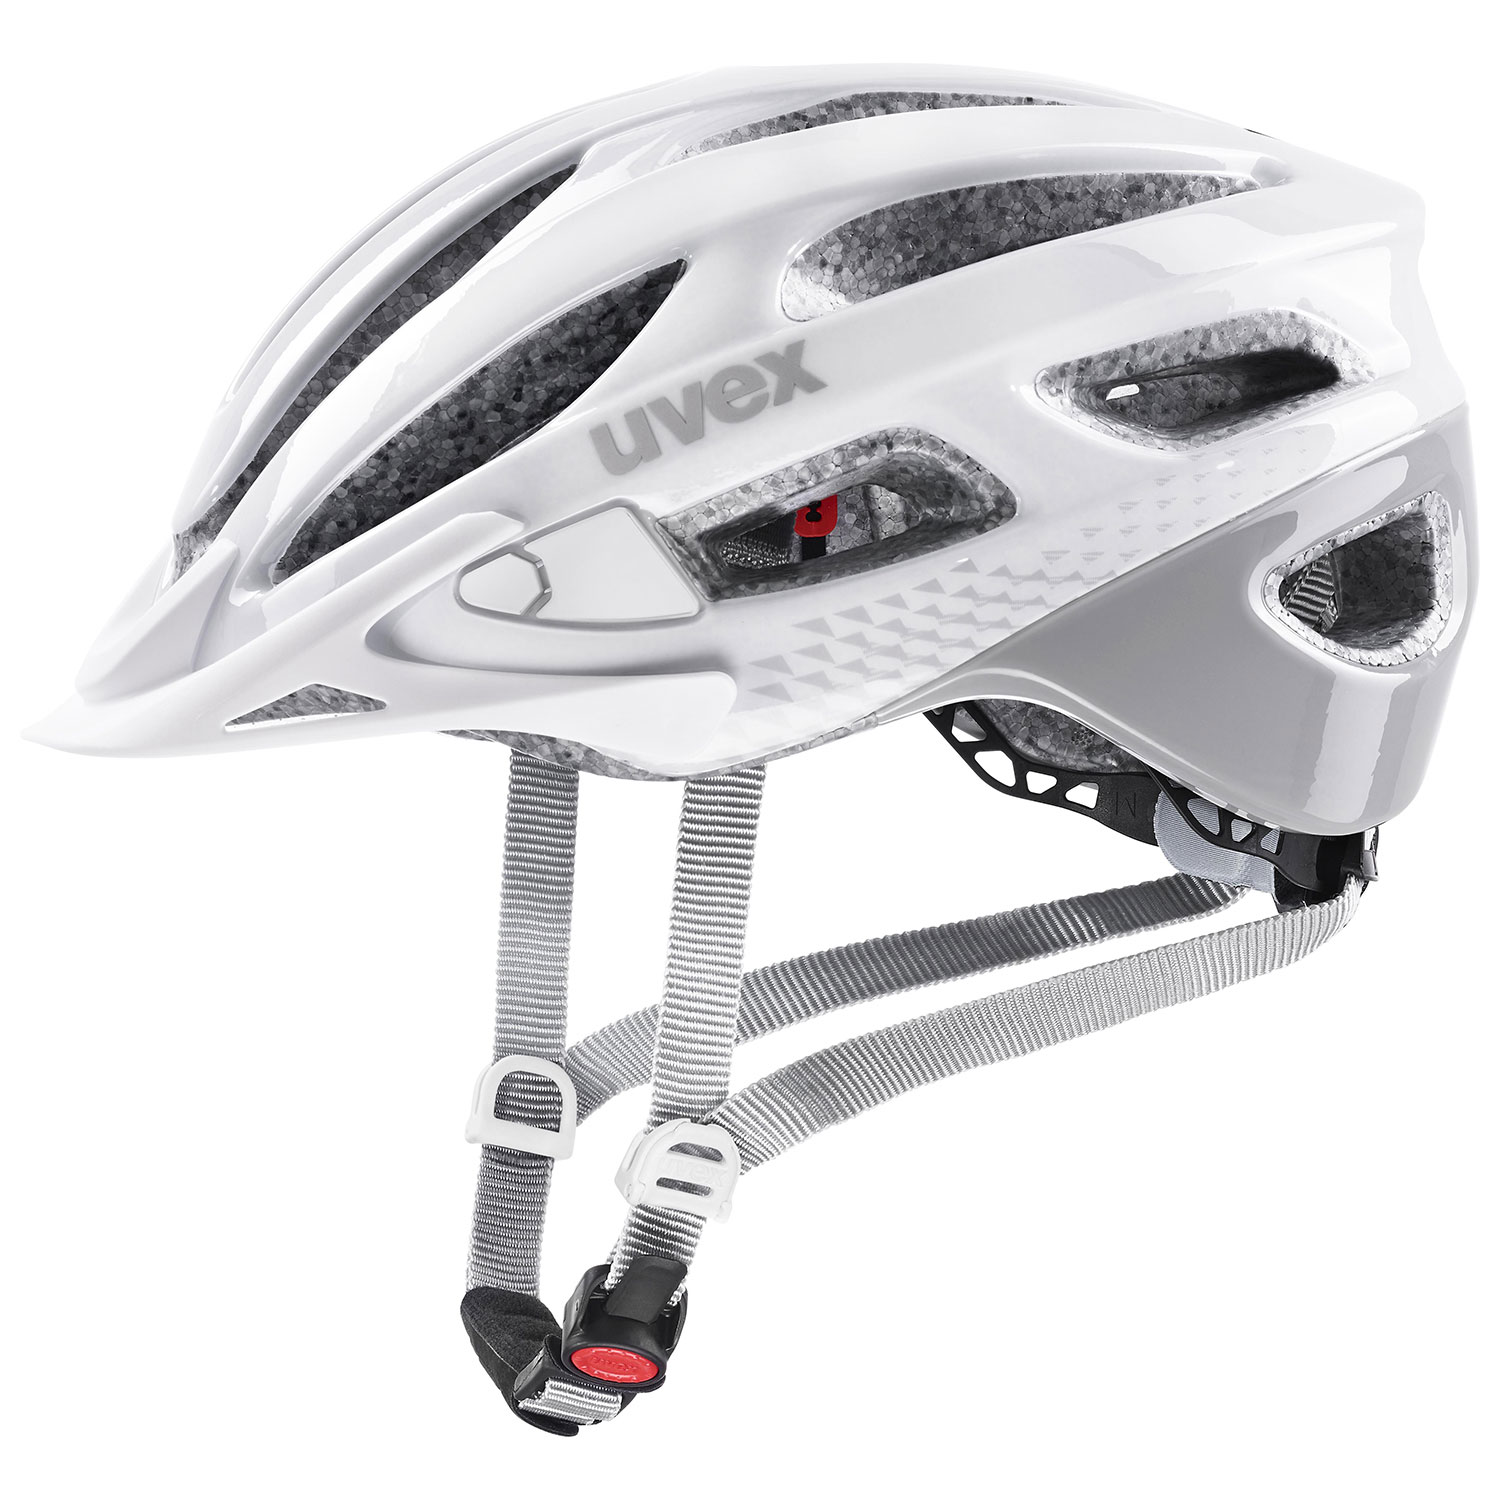 2021 UVEX HELMA TRUE, WHITE - GREY 55-58